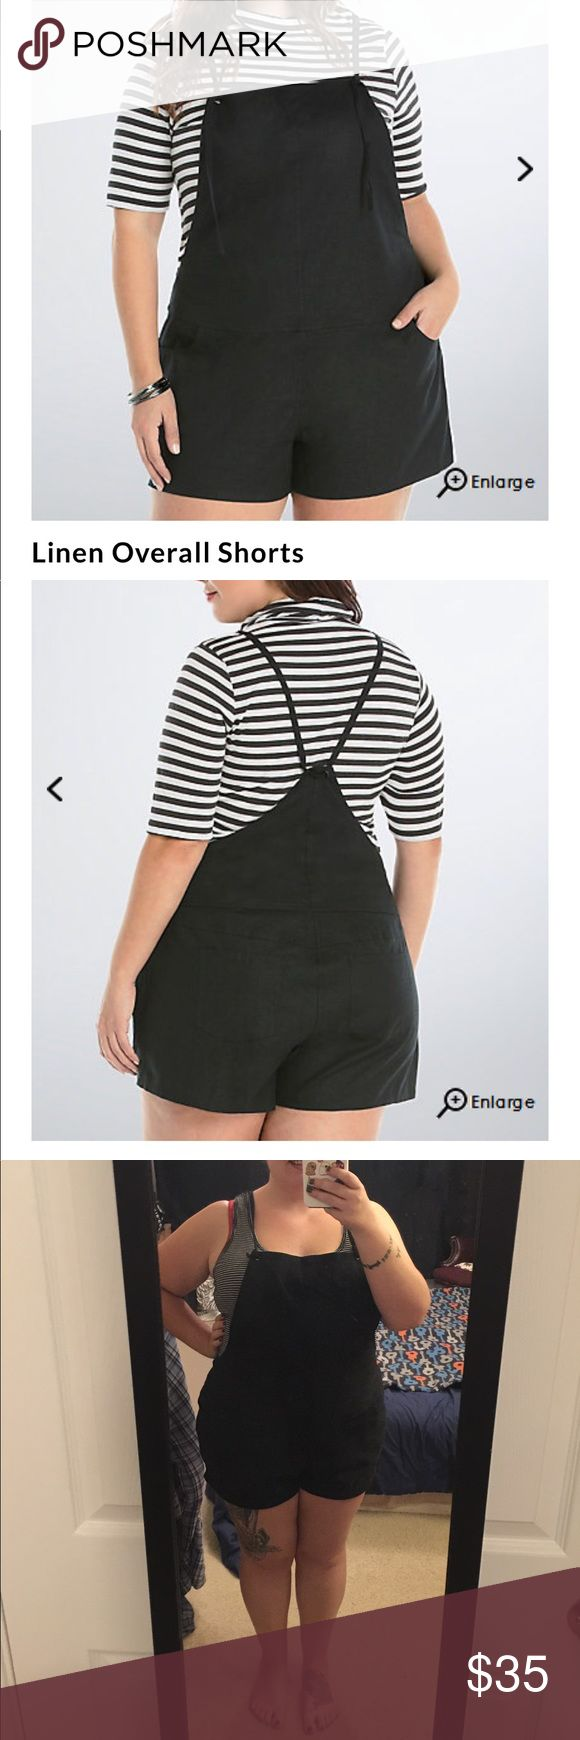 """Torrid Overall Shorts NWT Size 1 Overall, these overalls are definitely going to be the most unique thing you own this spring. Black linen lends a loose and lightweight fit. The smock front sports cute adjustable ties that lead to a sexy v-back. Front and back pockets.   Model is 5'9"""", size 1 Size 1 measures 3 1/2"""" inseamPolyesterWash cold, line dryImported plus size overalls torrid Jeans Overalls"""